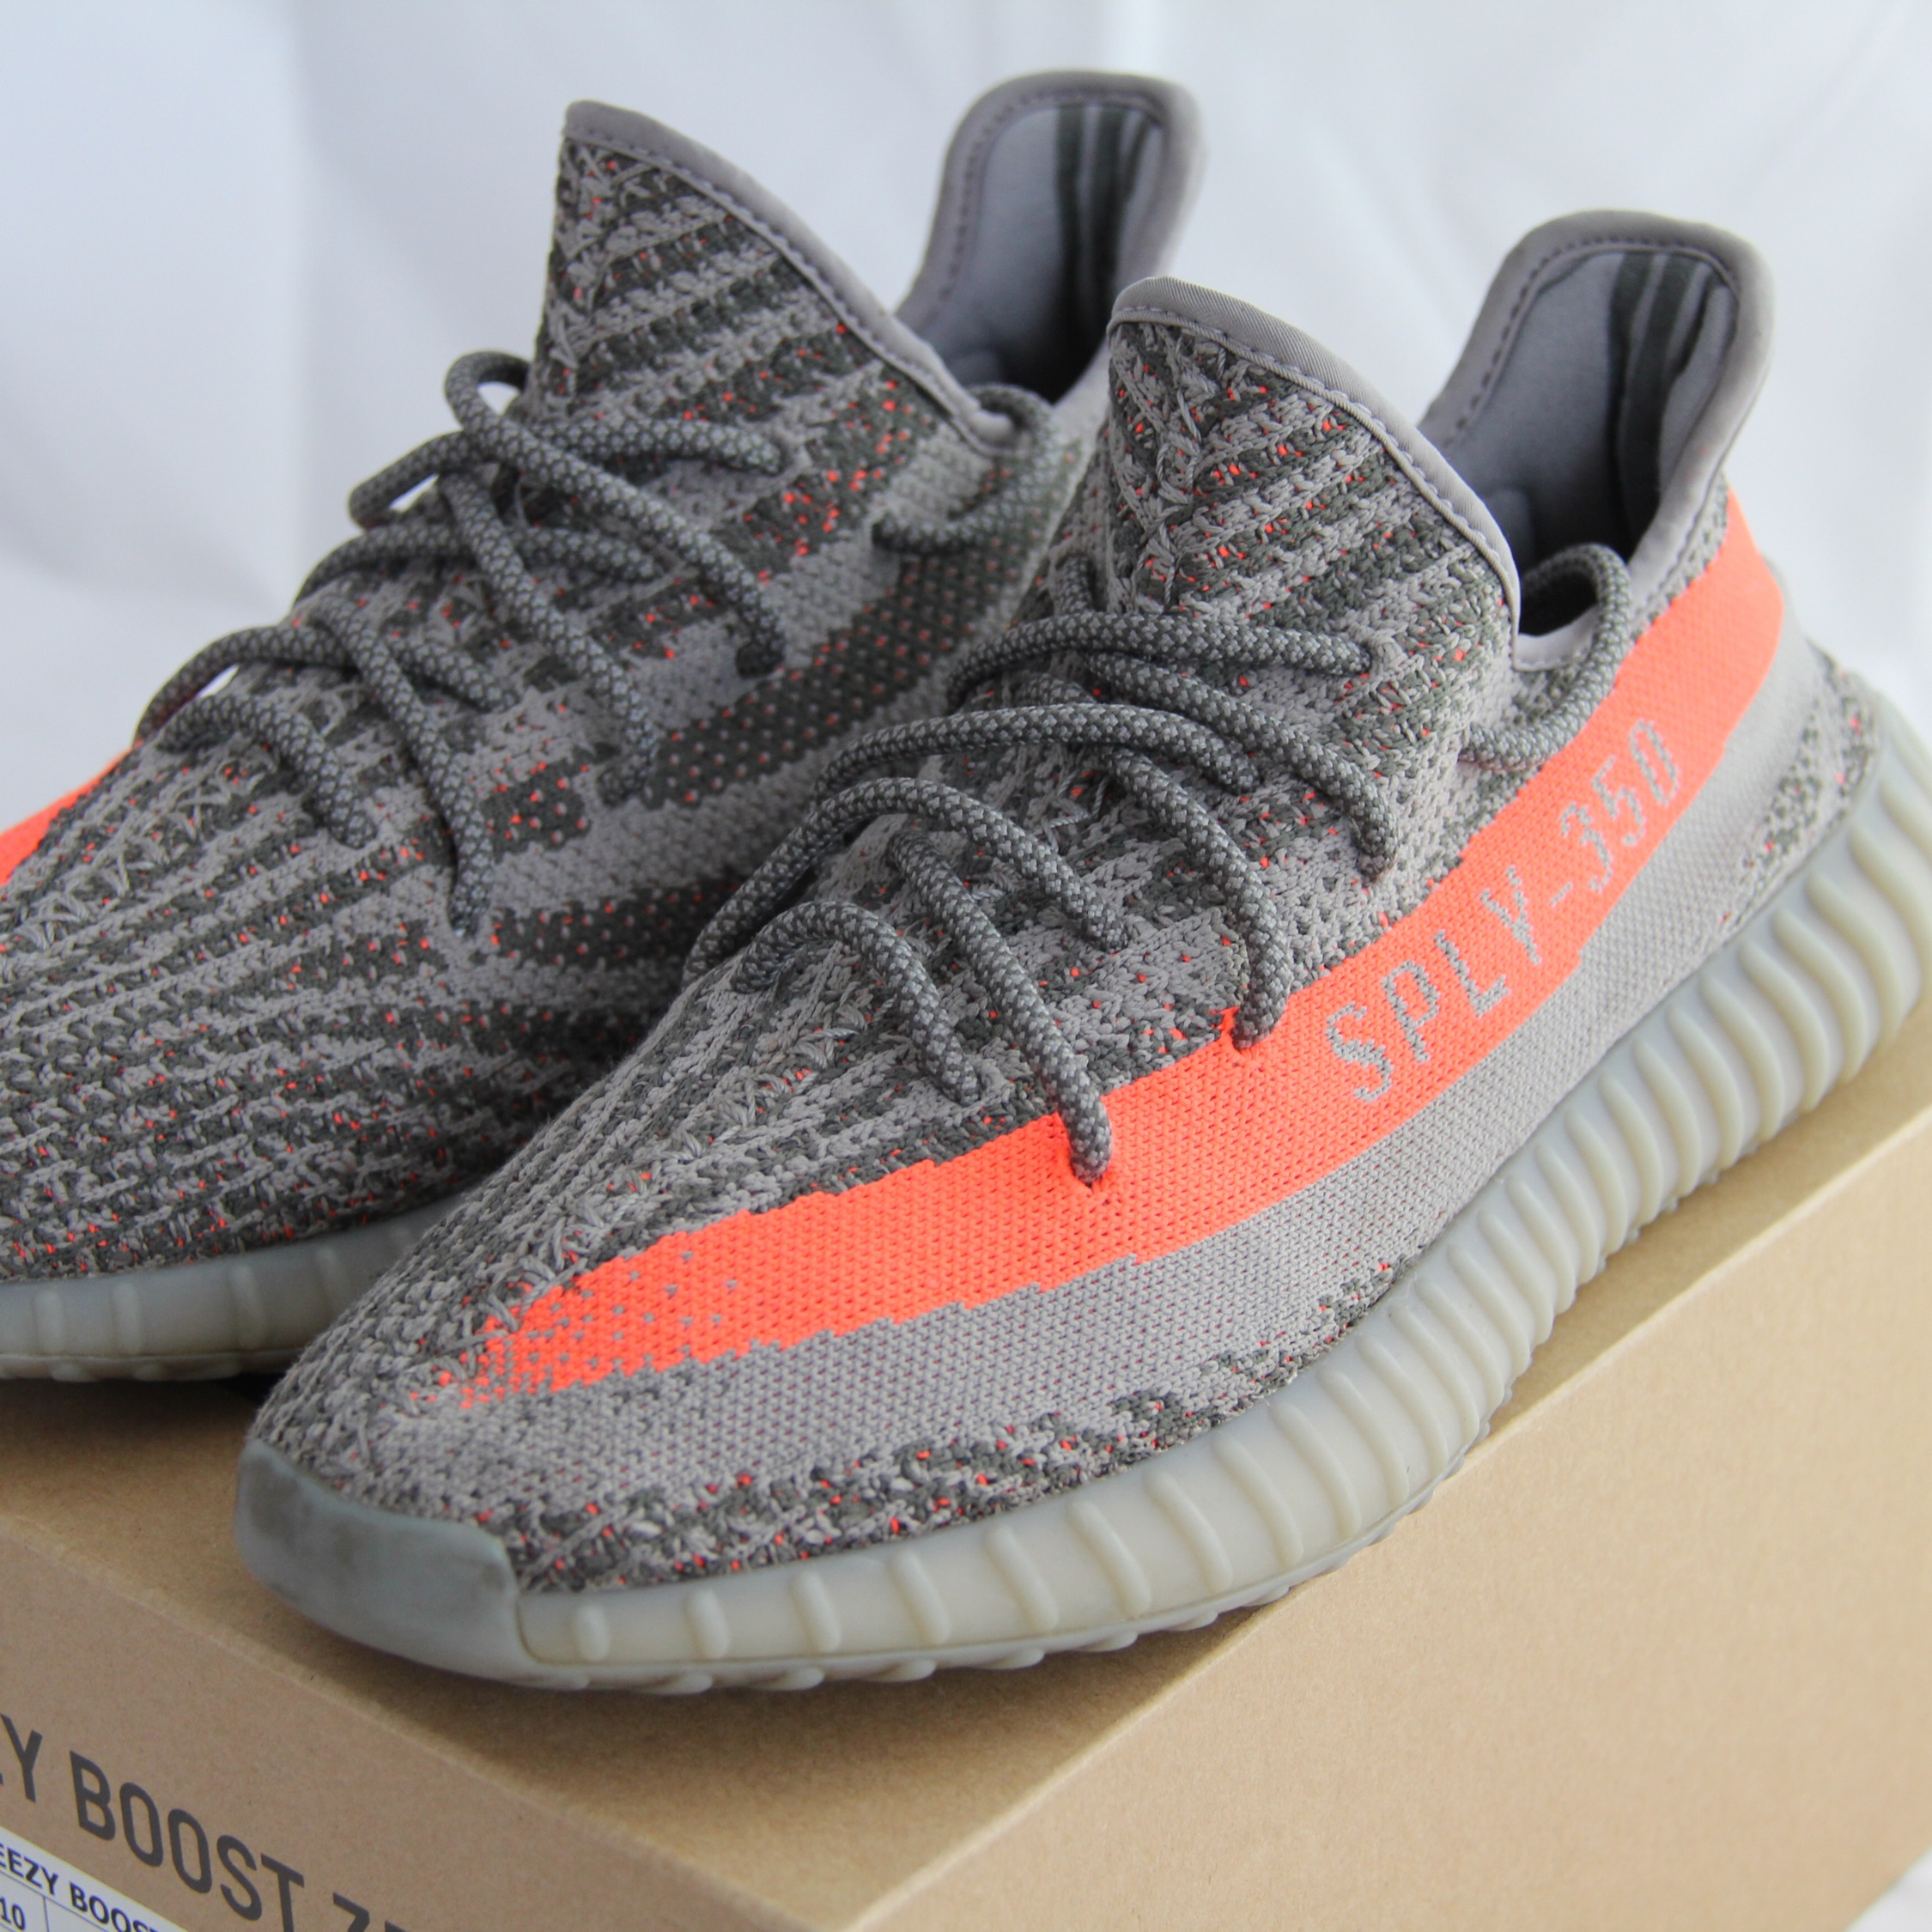 yeezy turtle dove tan